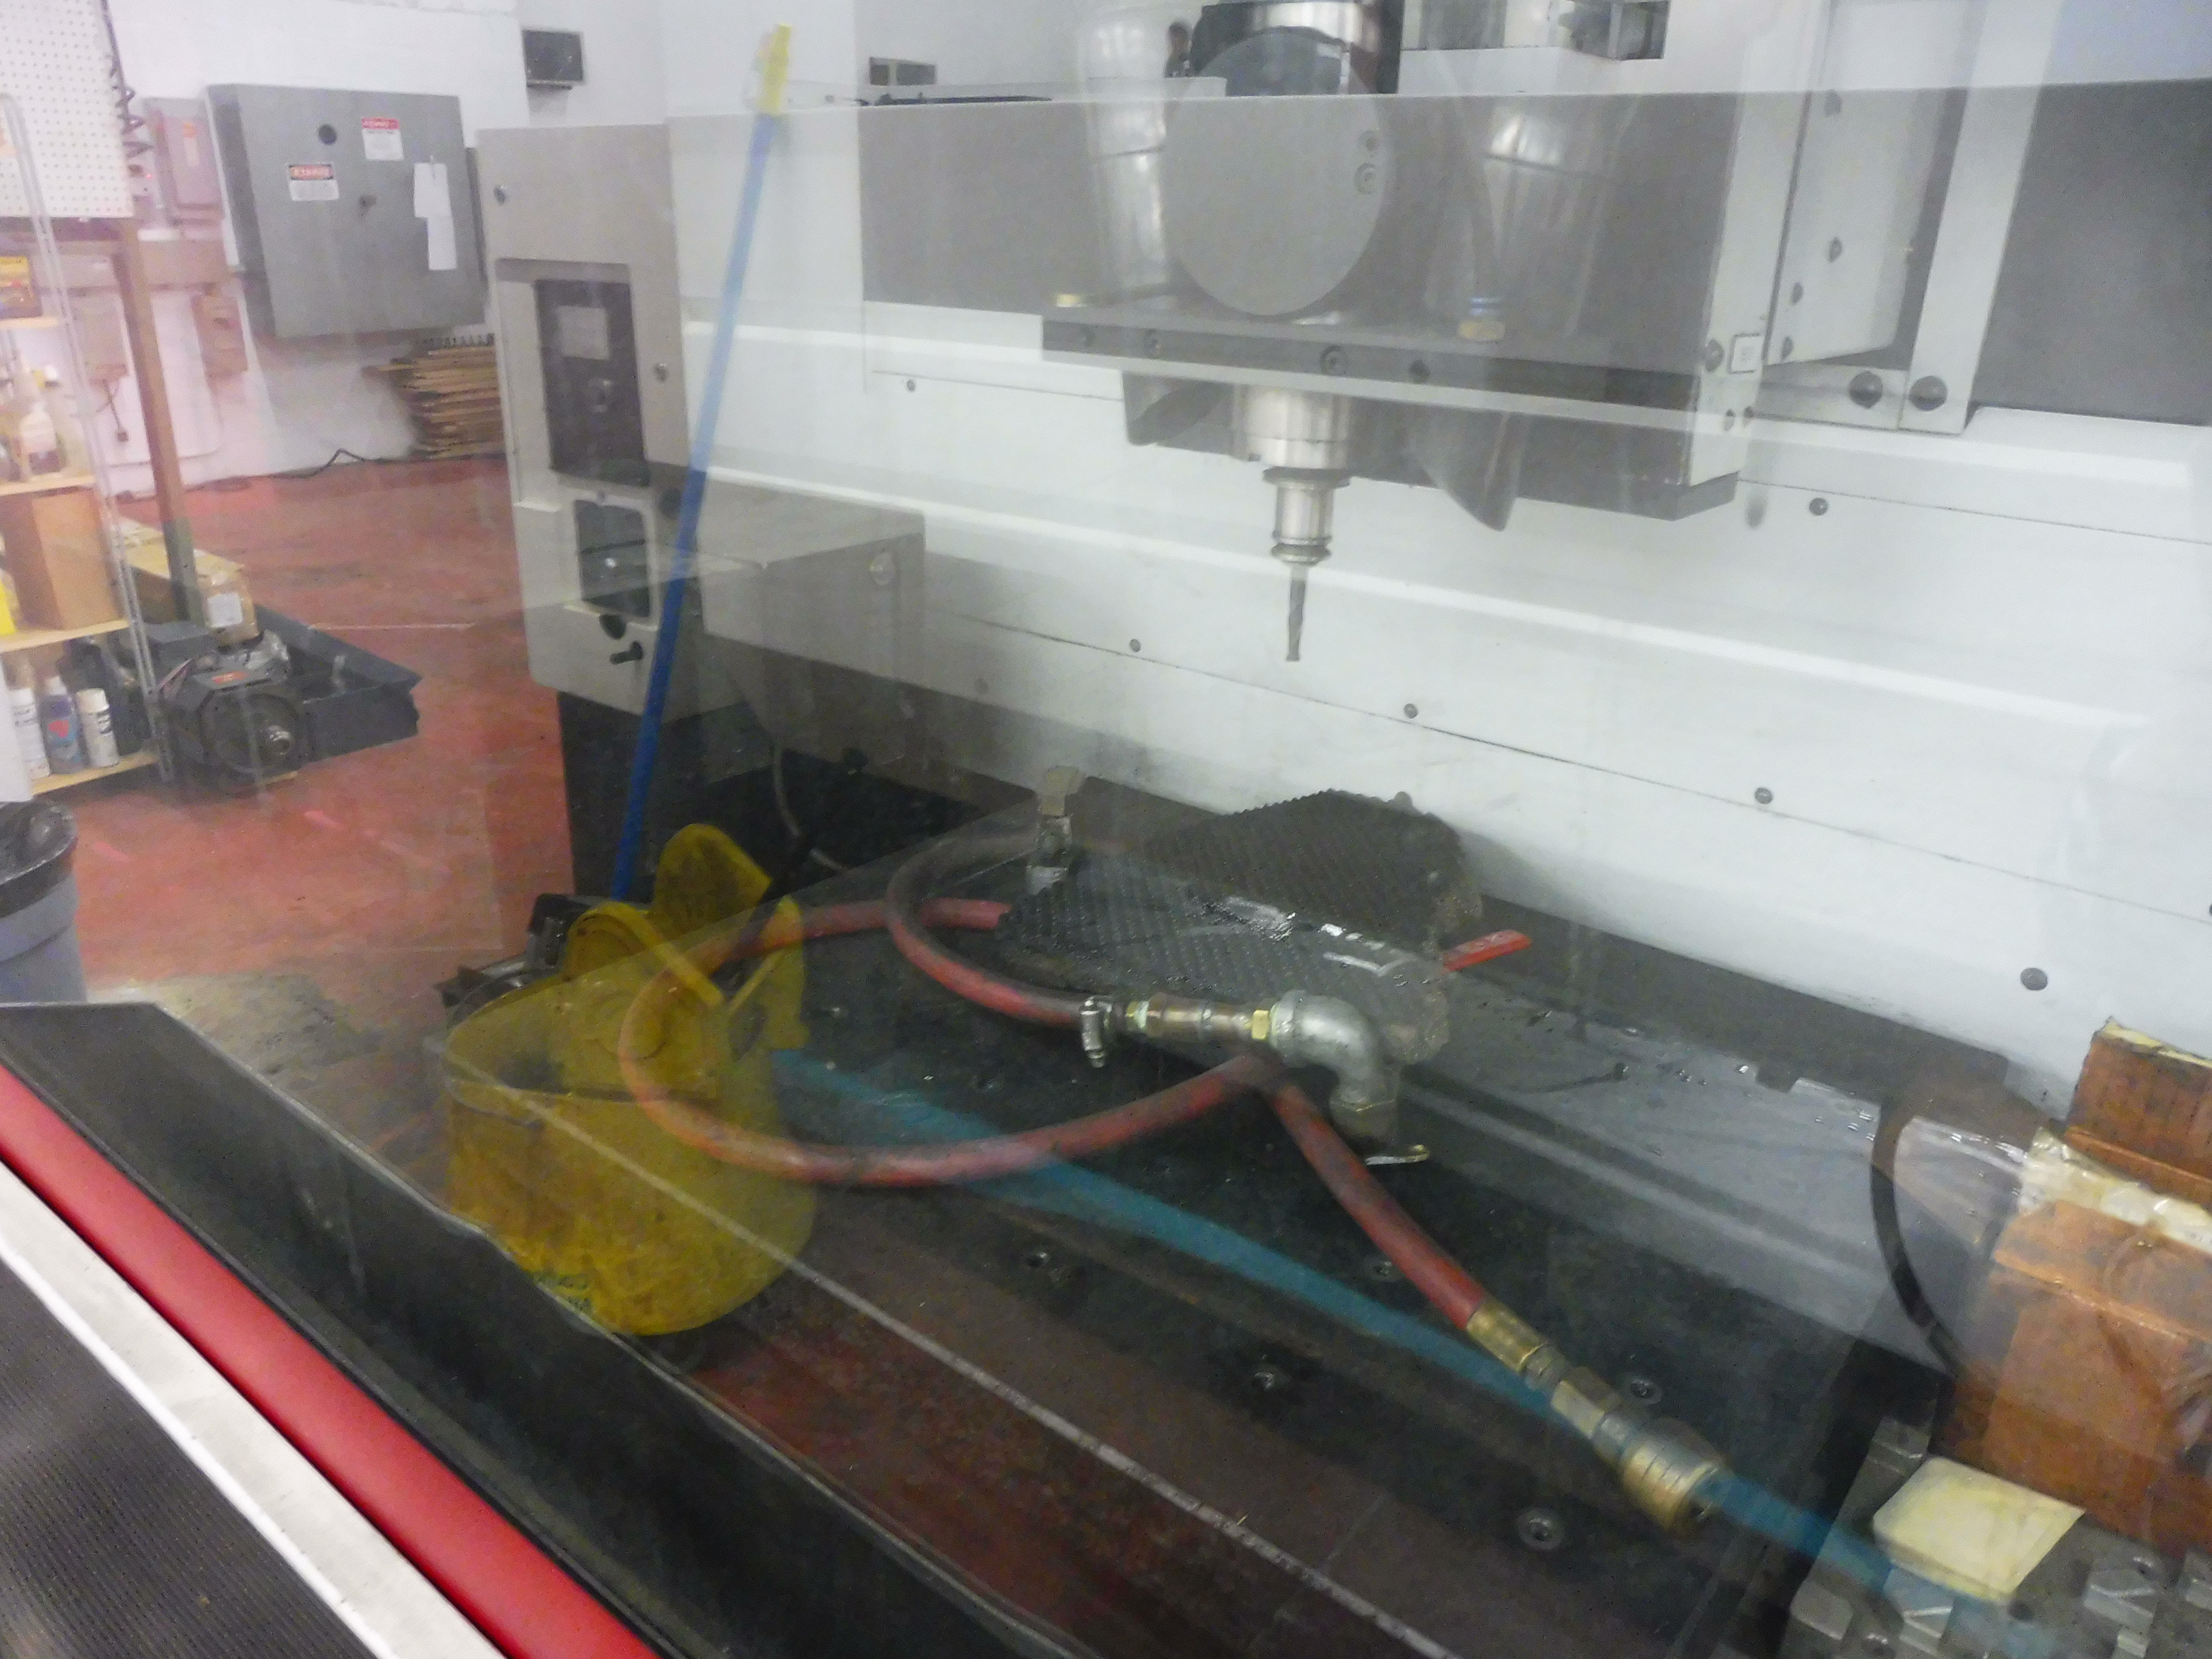 Lot 2 - 1996 KLINK MODEL HSC60-M HIGH SPEED CNC VERTICAL MACHINING CENTRE, S/N 75210701, WITH SEIMENS